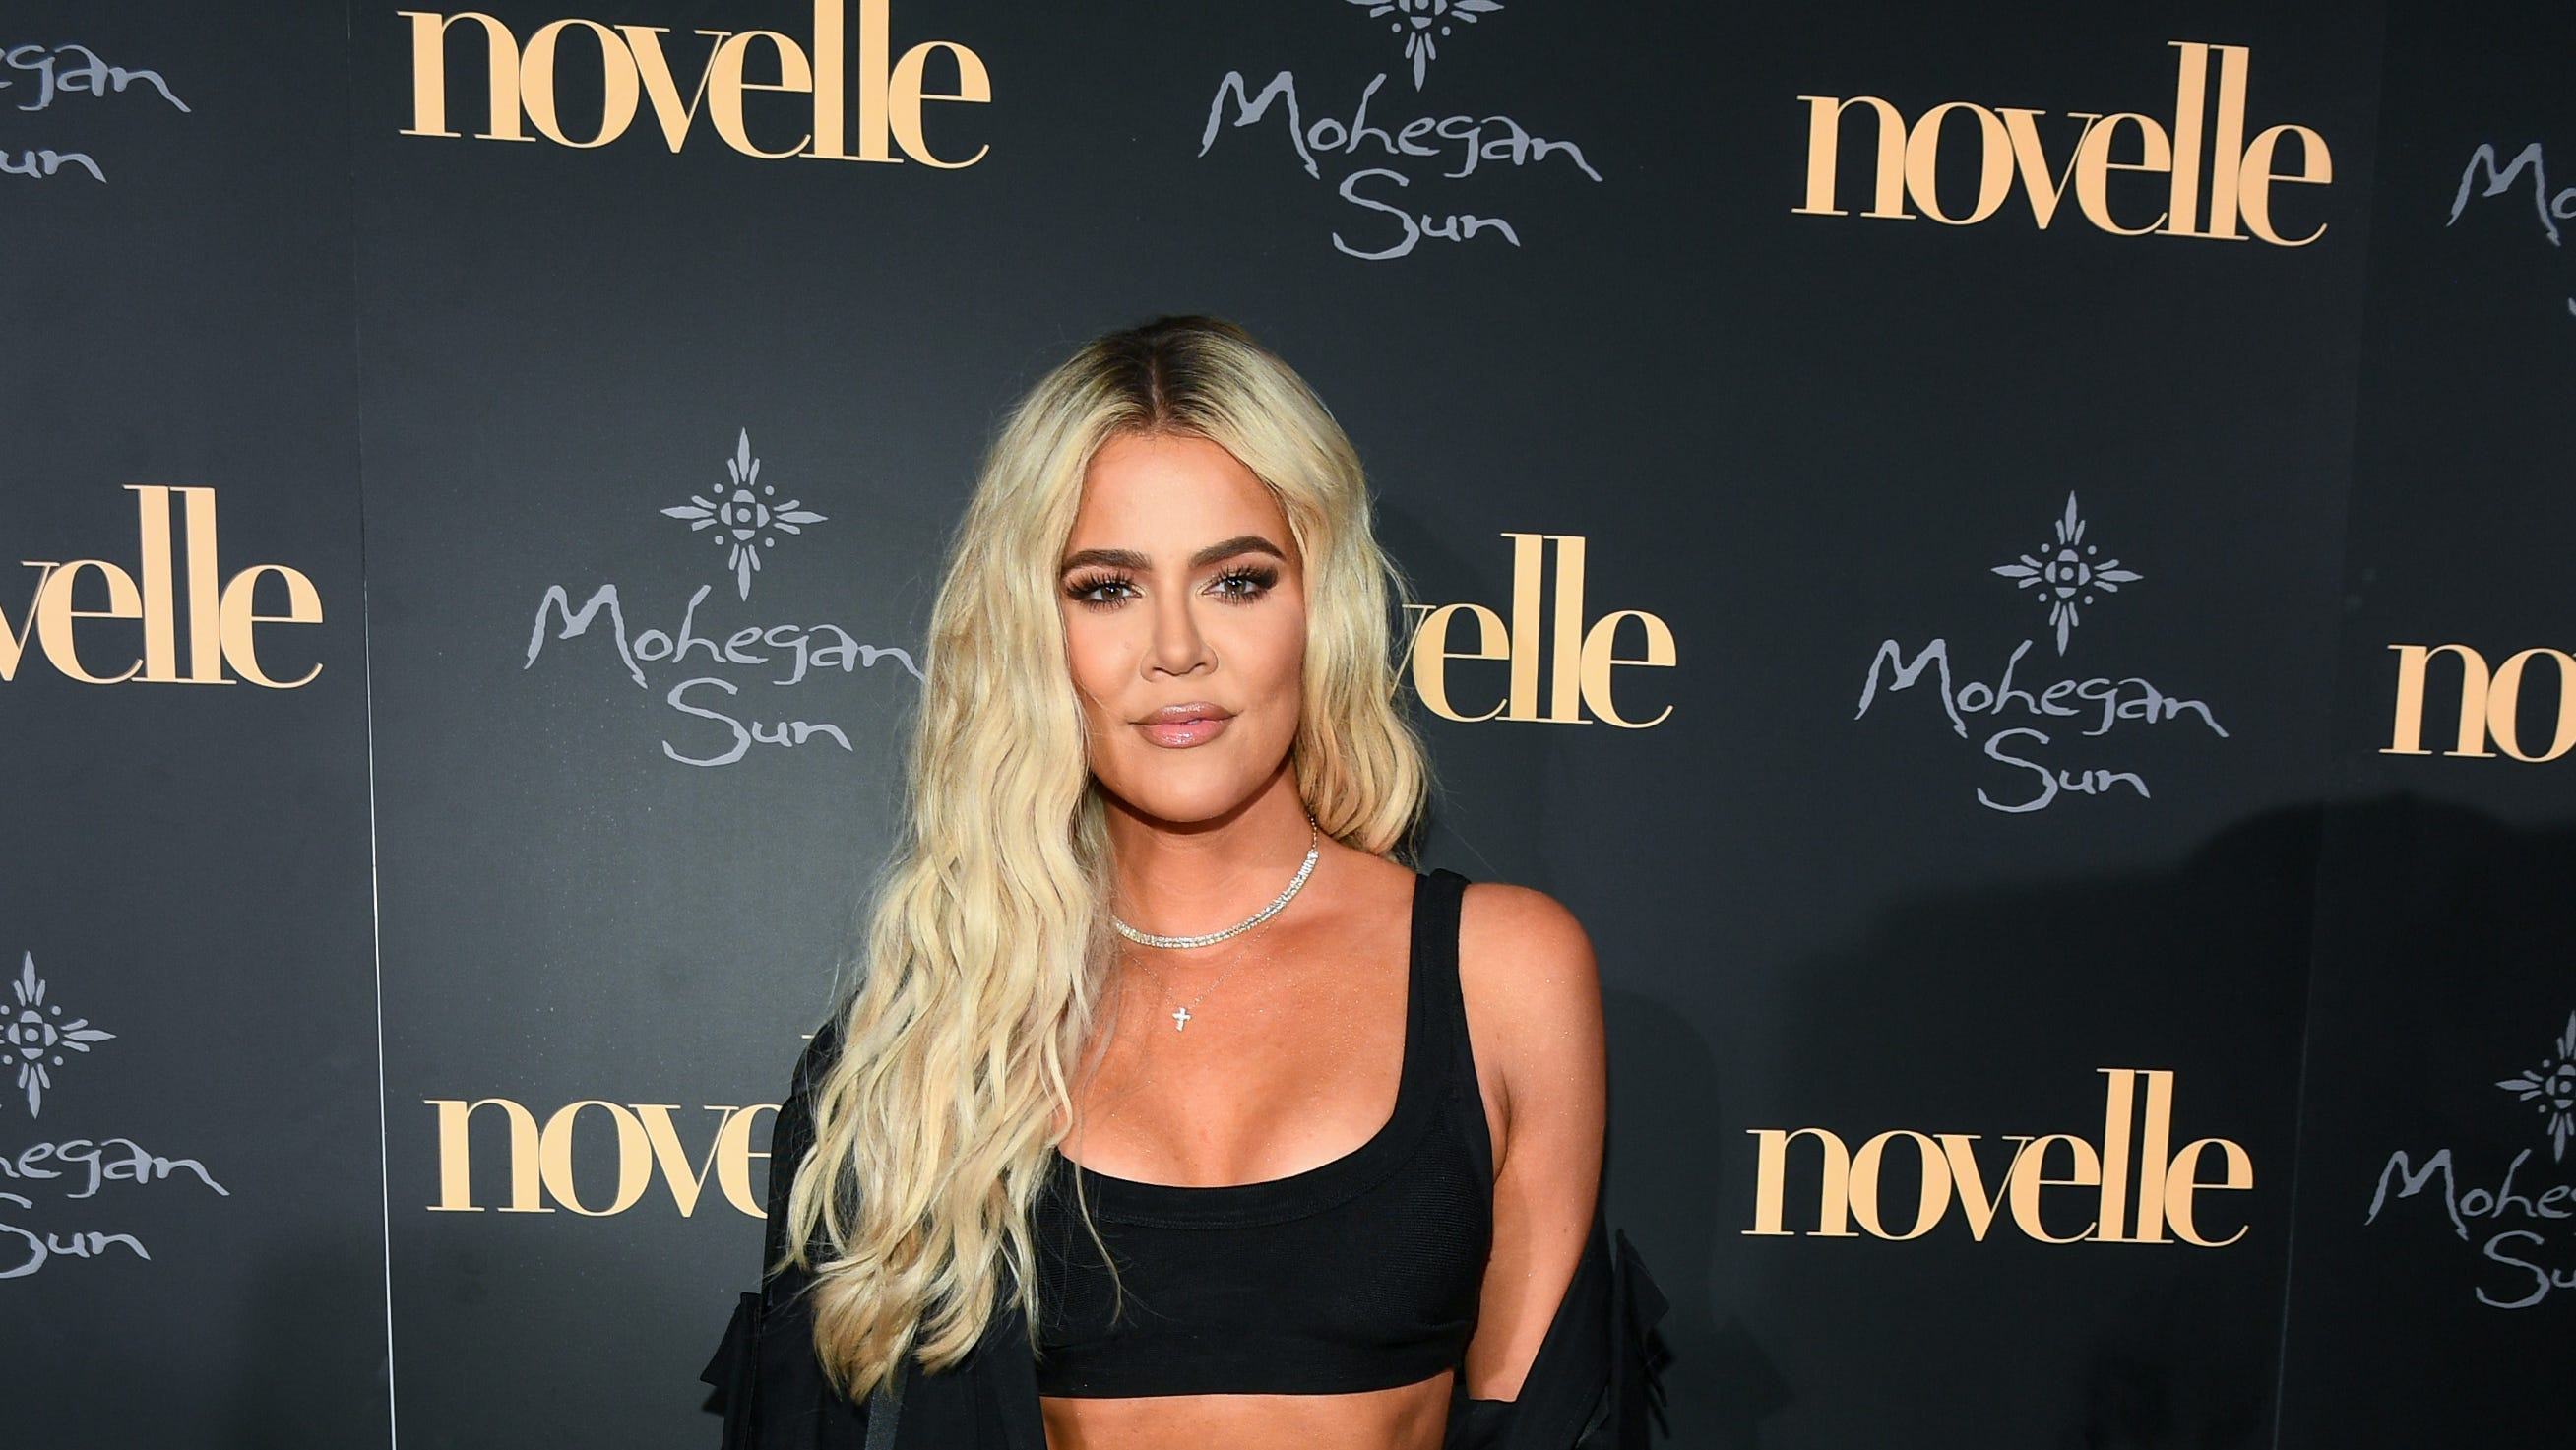 Khloe Kardashian's nose job confession and the pressure to look perfect